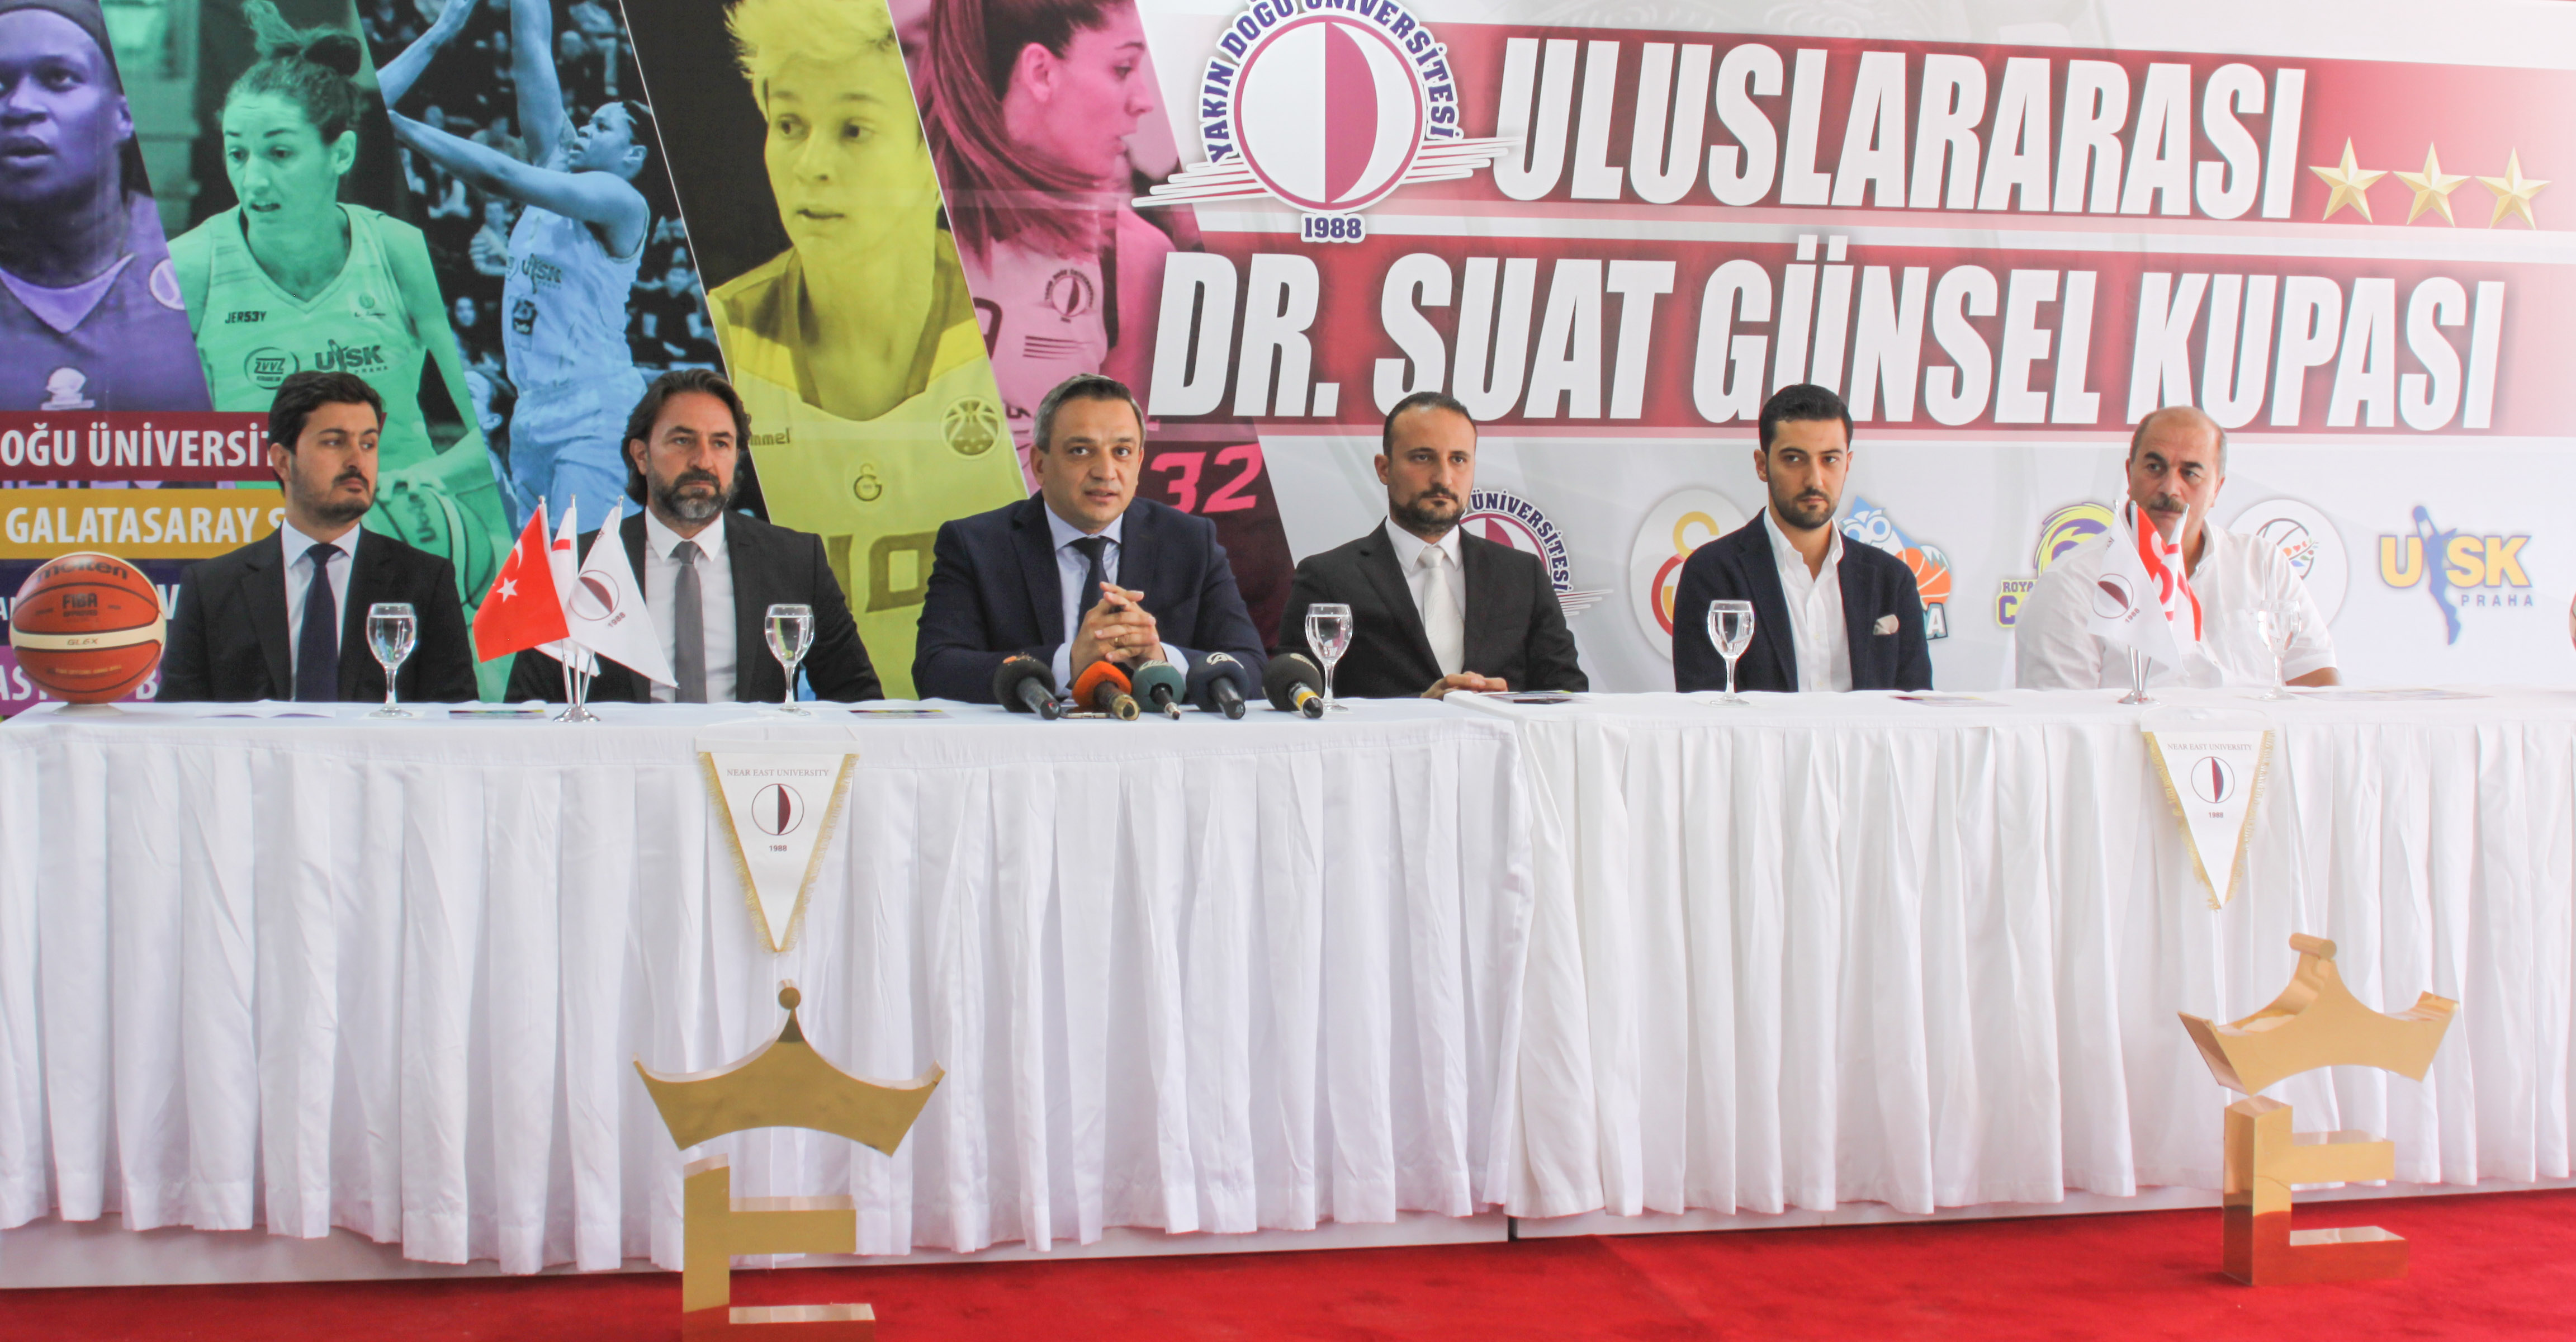 The cup excitement is about to begin…The press conference for the International Dr. Suat Günsel Tournament has been realized